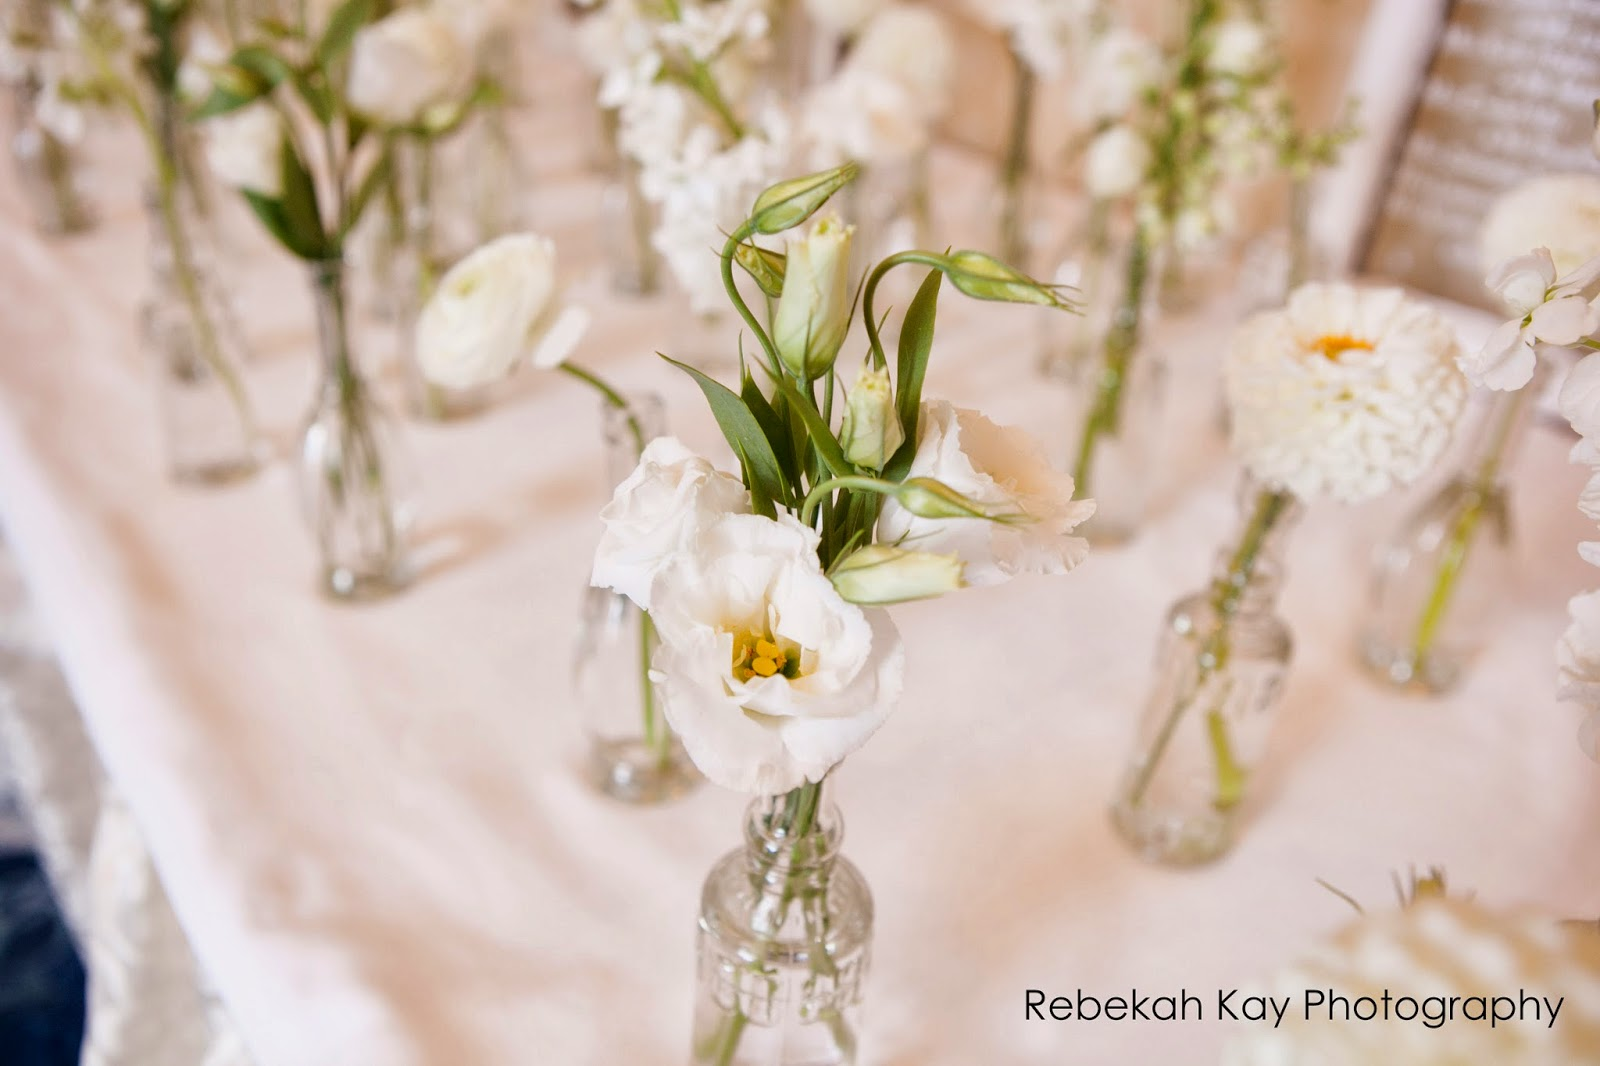 les fleurs : bud vase escort cards : white flowers place card table : bud vase favors